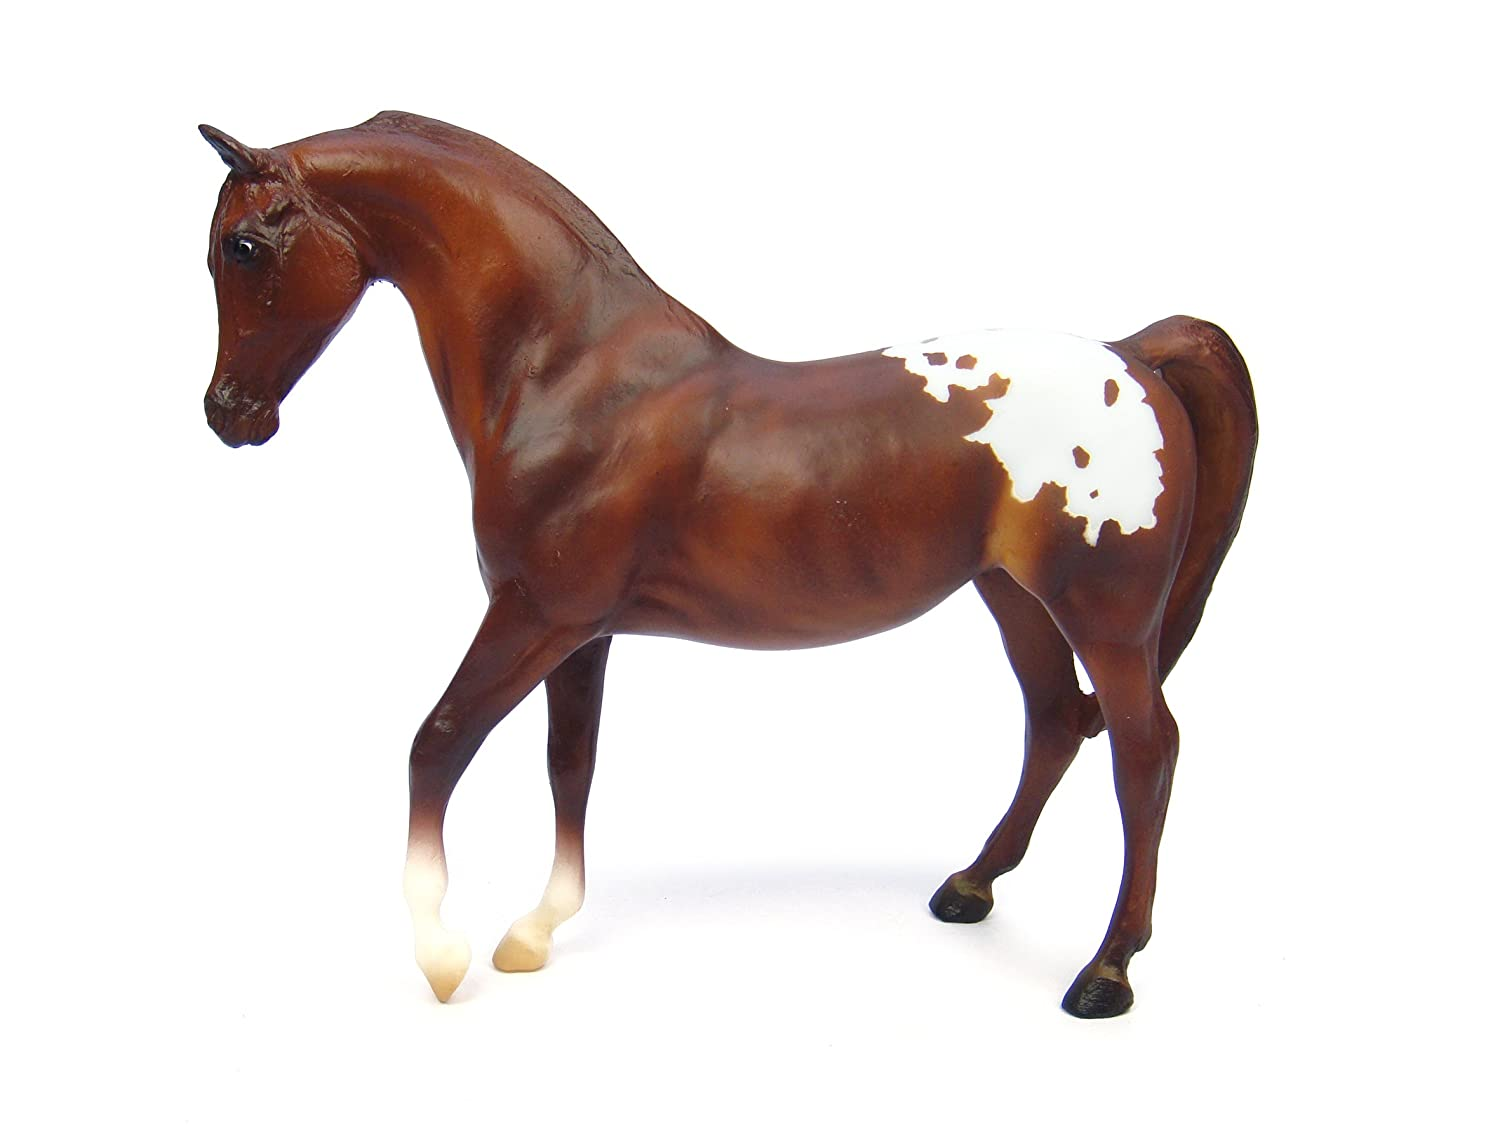 Animal Science Series Unit Study Ideas And Freebies For Studying Farm Animals Horses